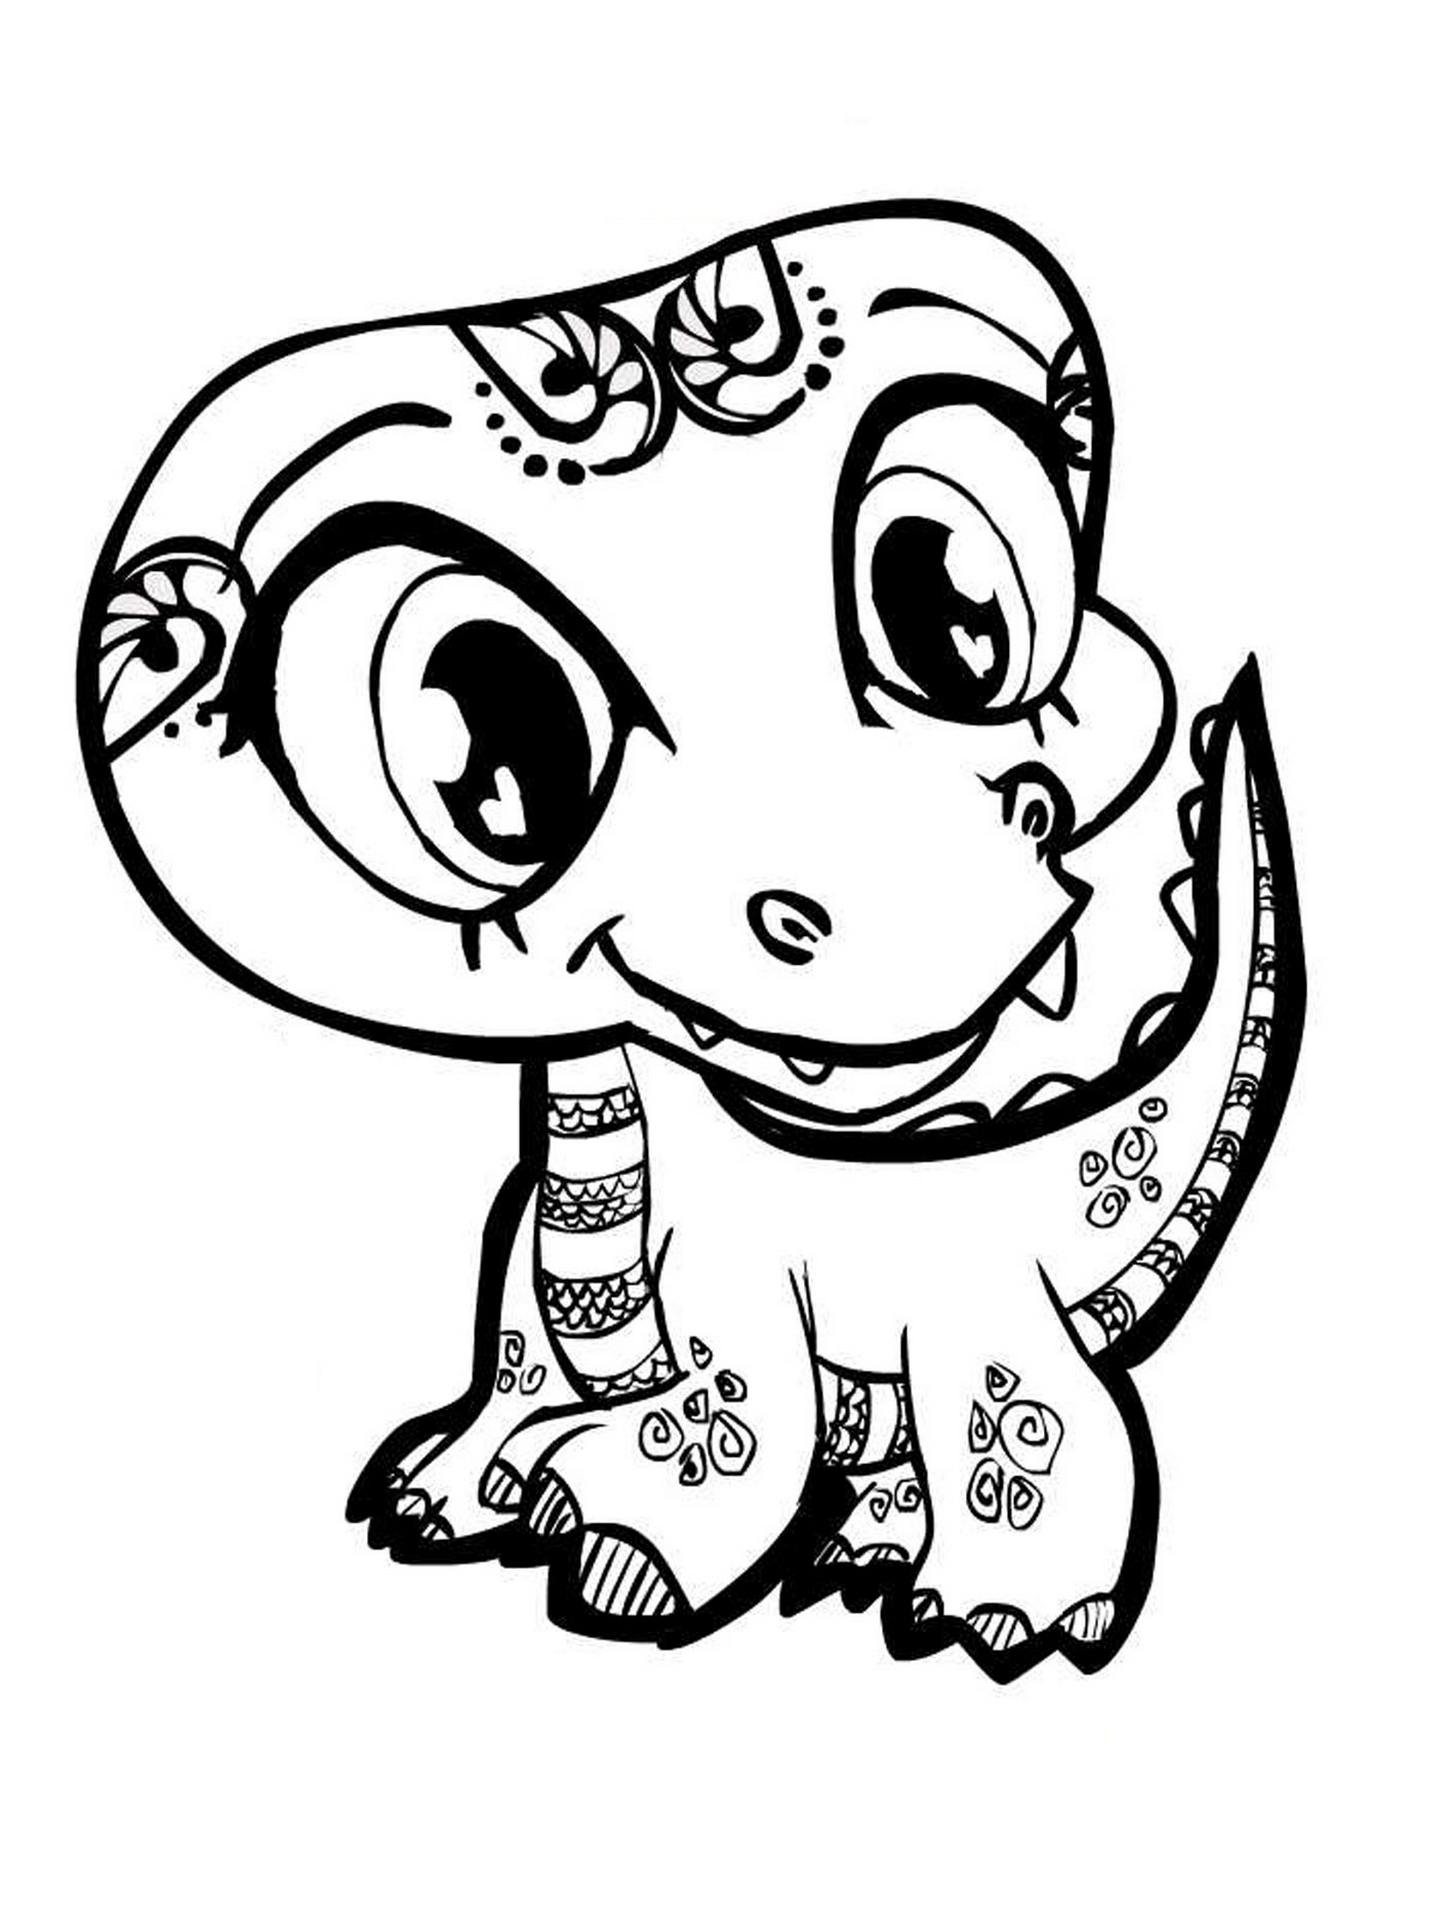 coloring pages for tweens 10 free coloring pages for teens parents tweens coloring pages for